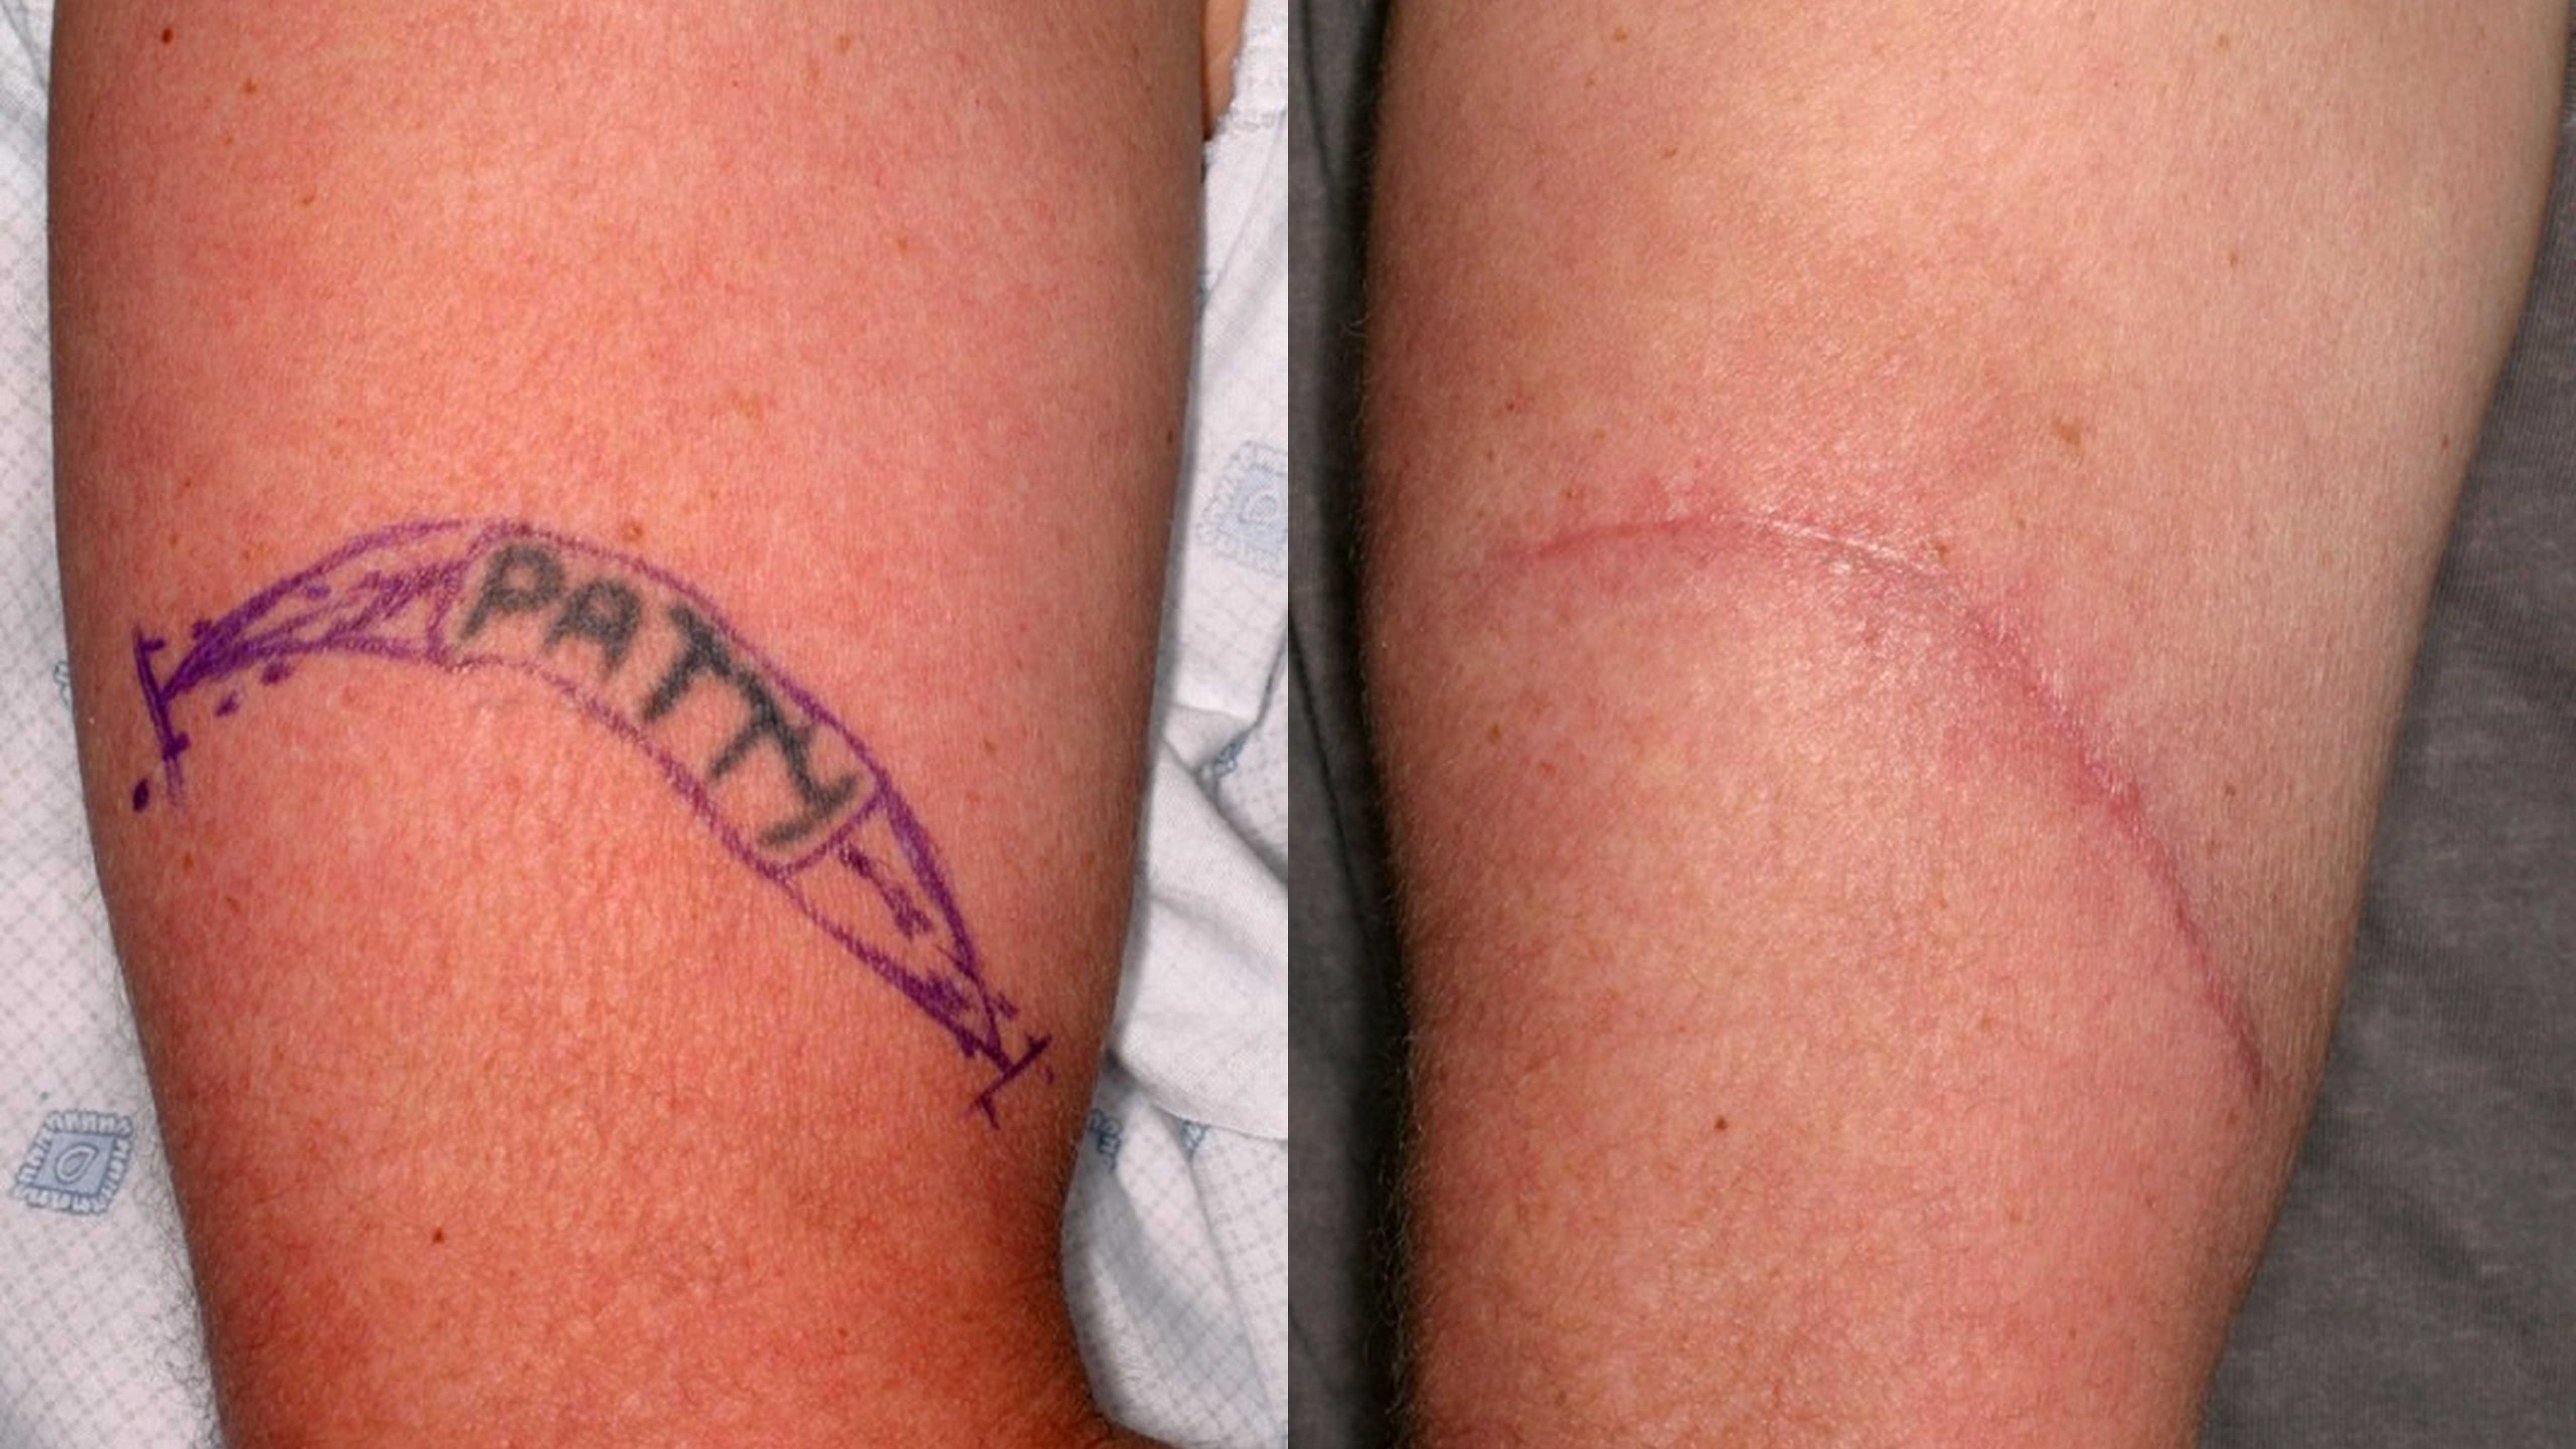 laser removal surgery and other methods